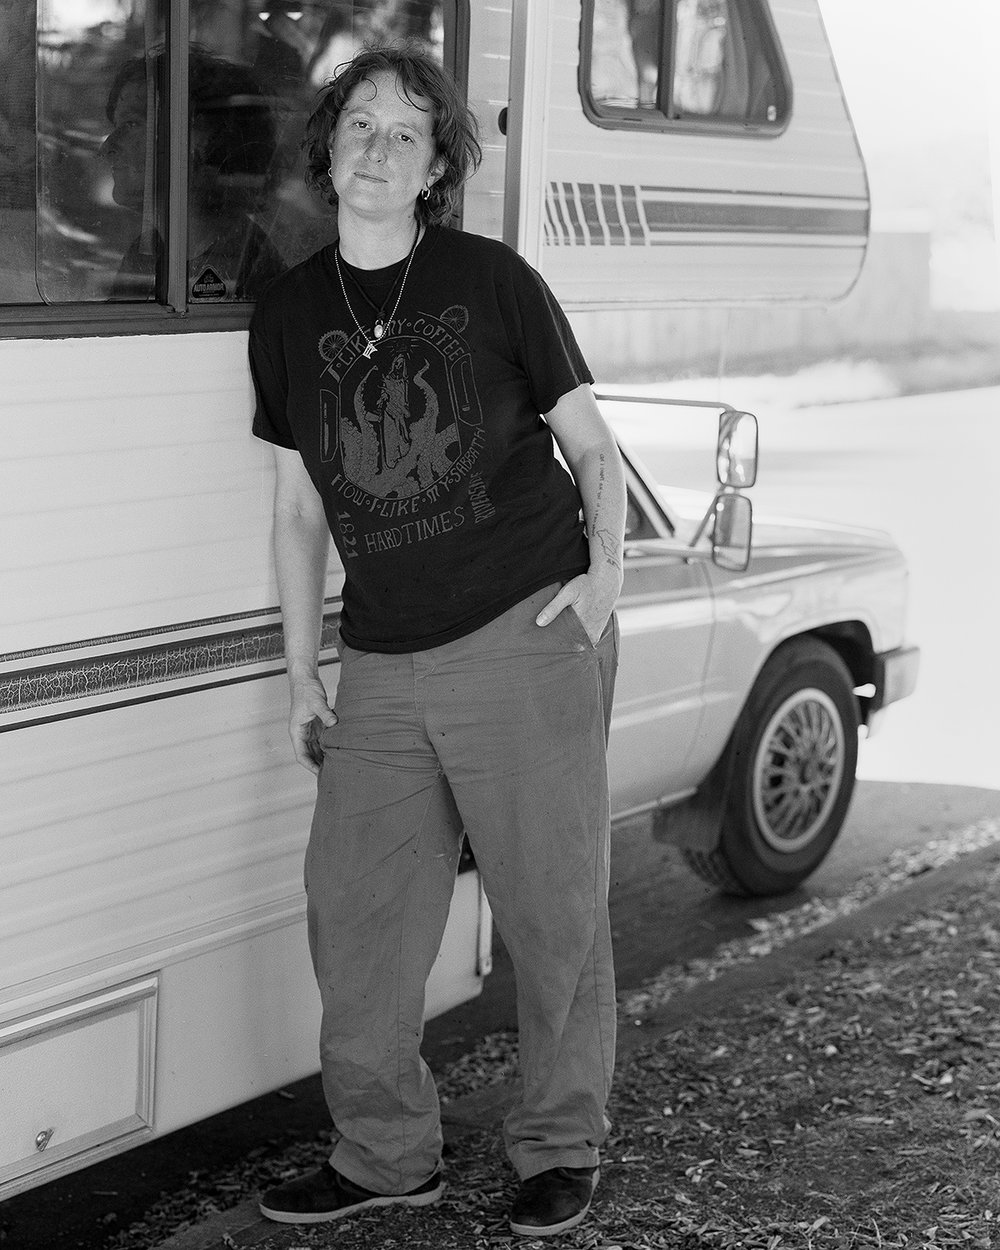 Rozina beside her RV in Portland, OR.